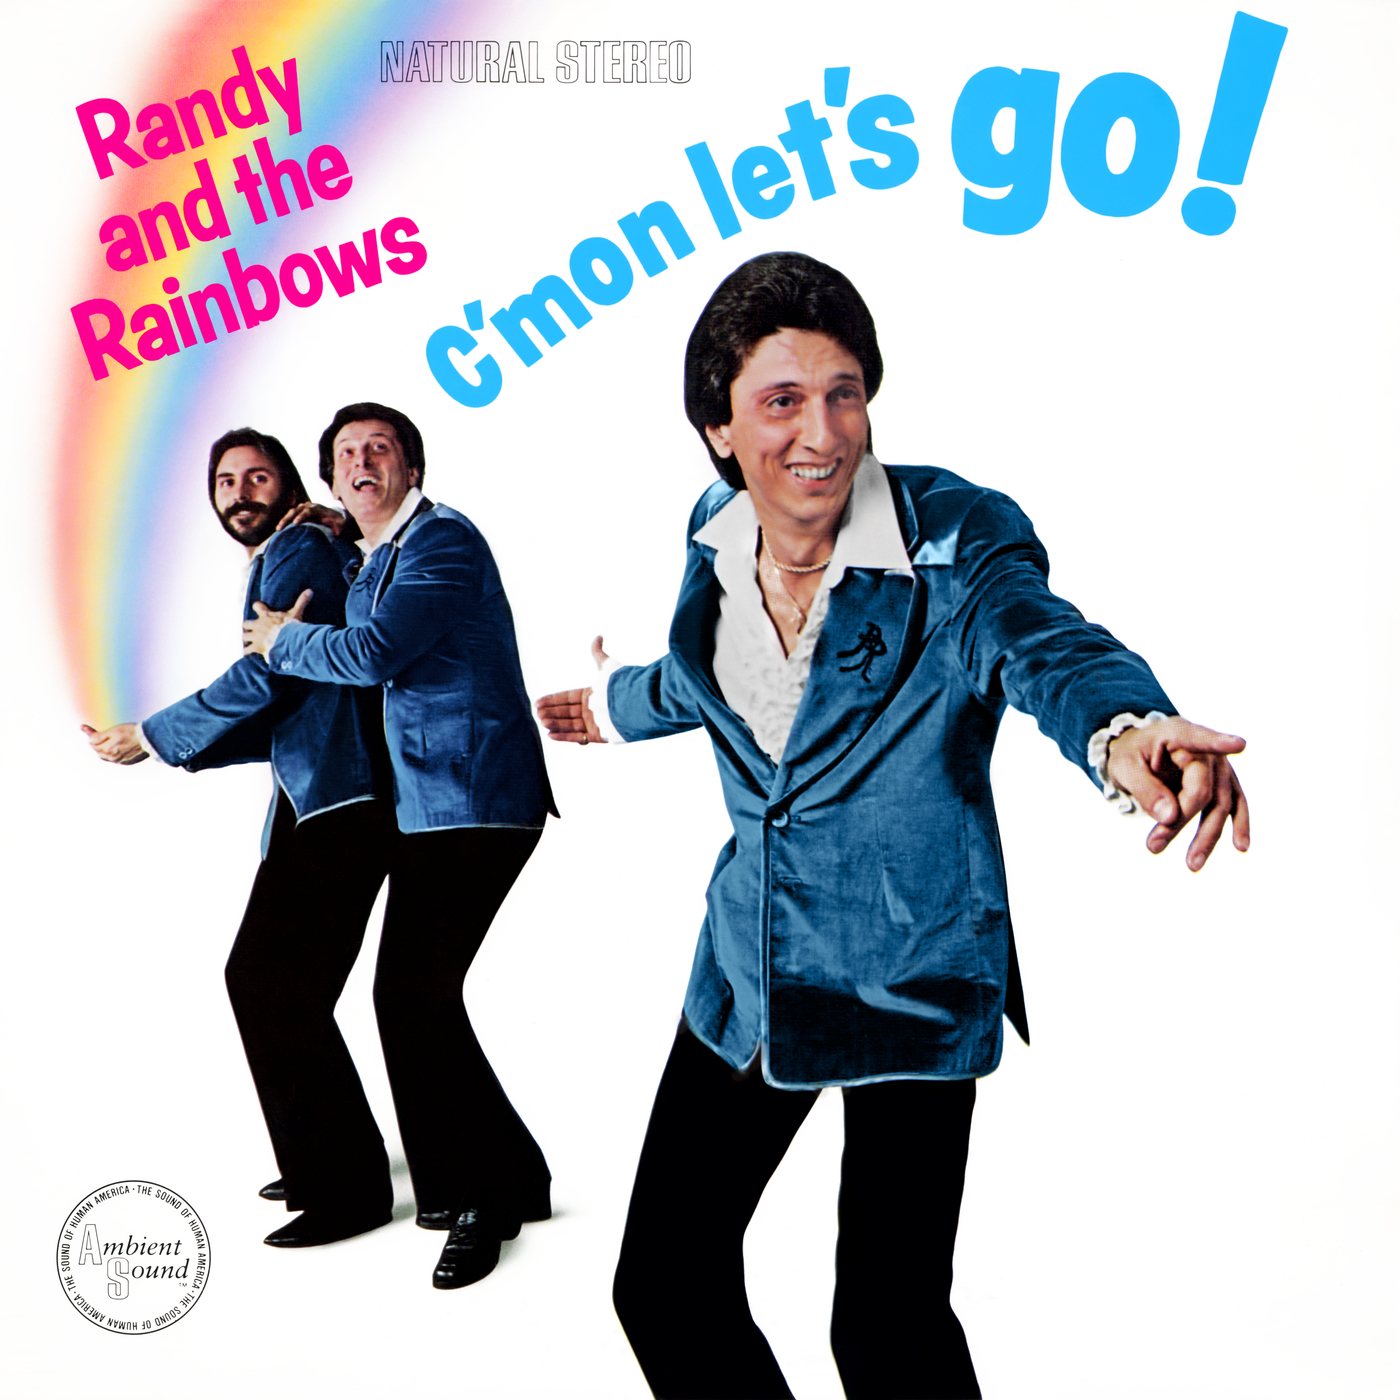 C'mon Let's Go! - Randy & The Rainbows